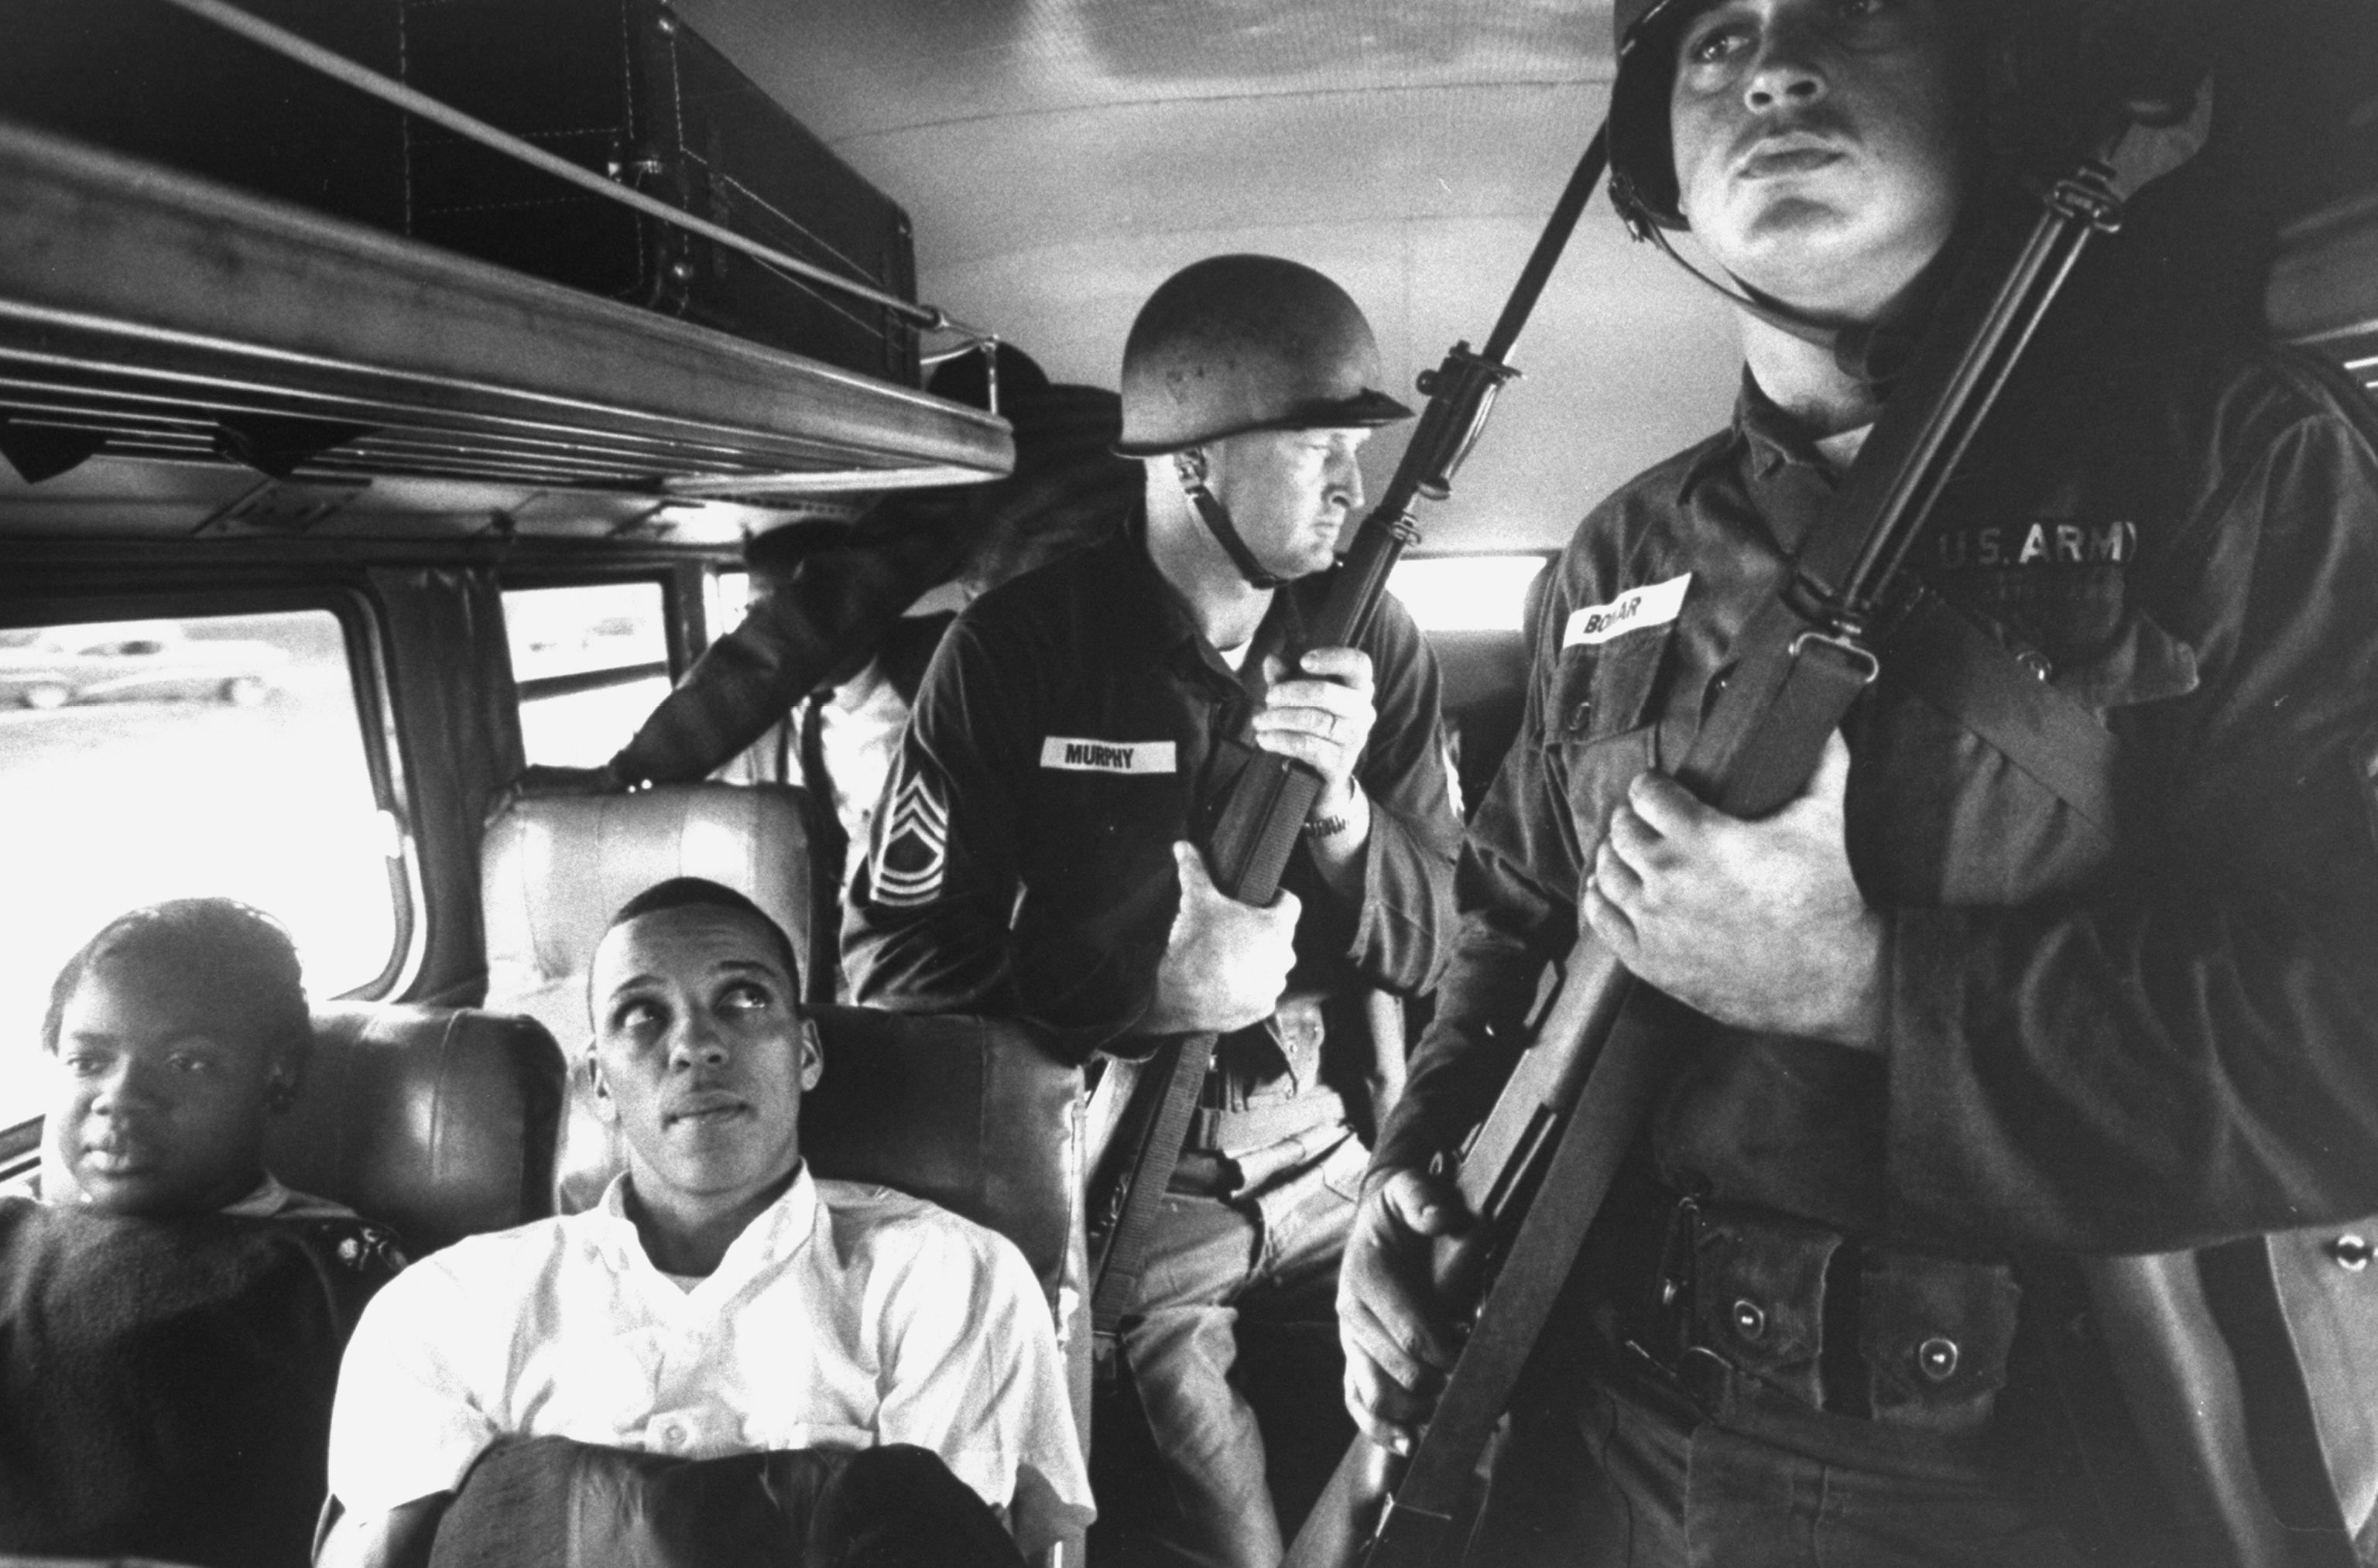 (L-R) Freedom Riders Julia Aaron & David Dennis sitting on board interstate bus as they & 25 others (bkgrd. & unseen) are escorted by 2 MS Natl. Guardsmen holding bayonets, on way fr. Montgomery, AL to Jackson, MS.